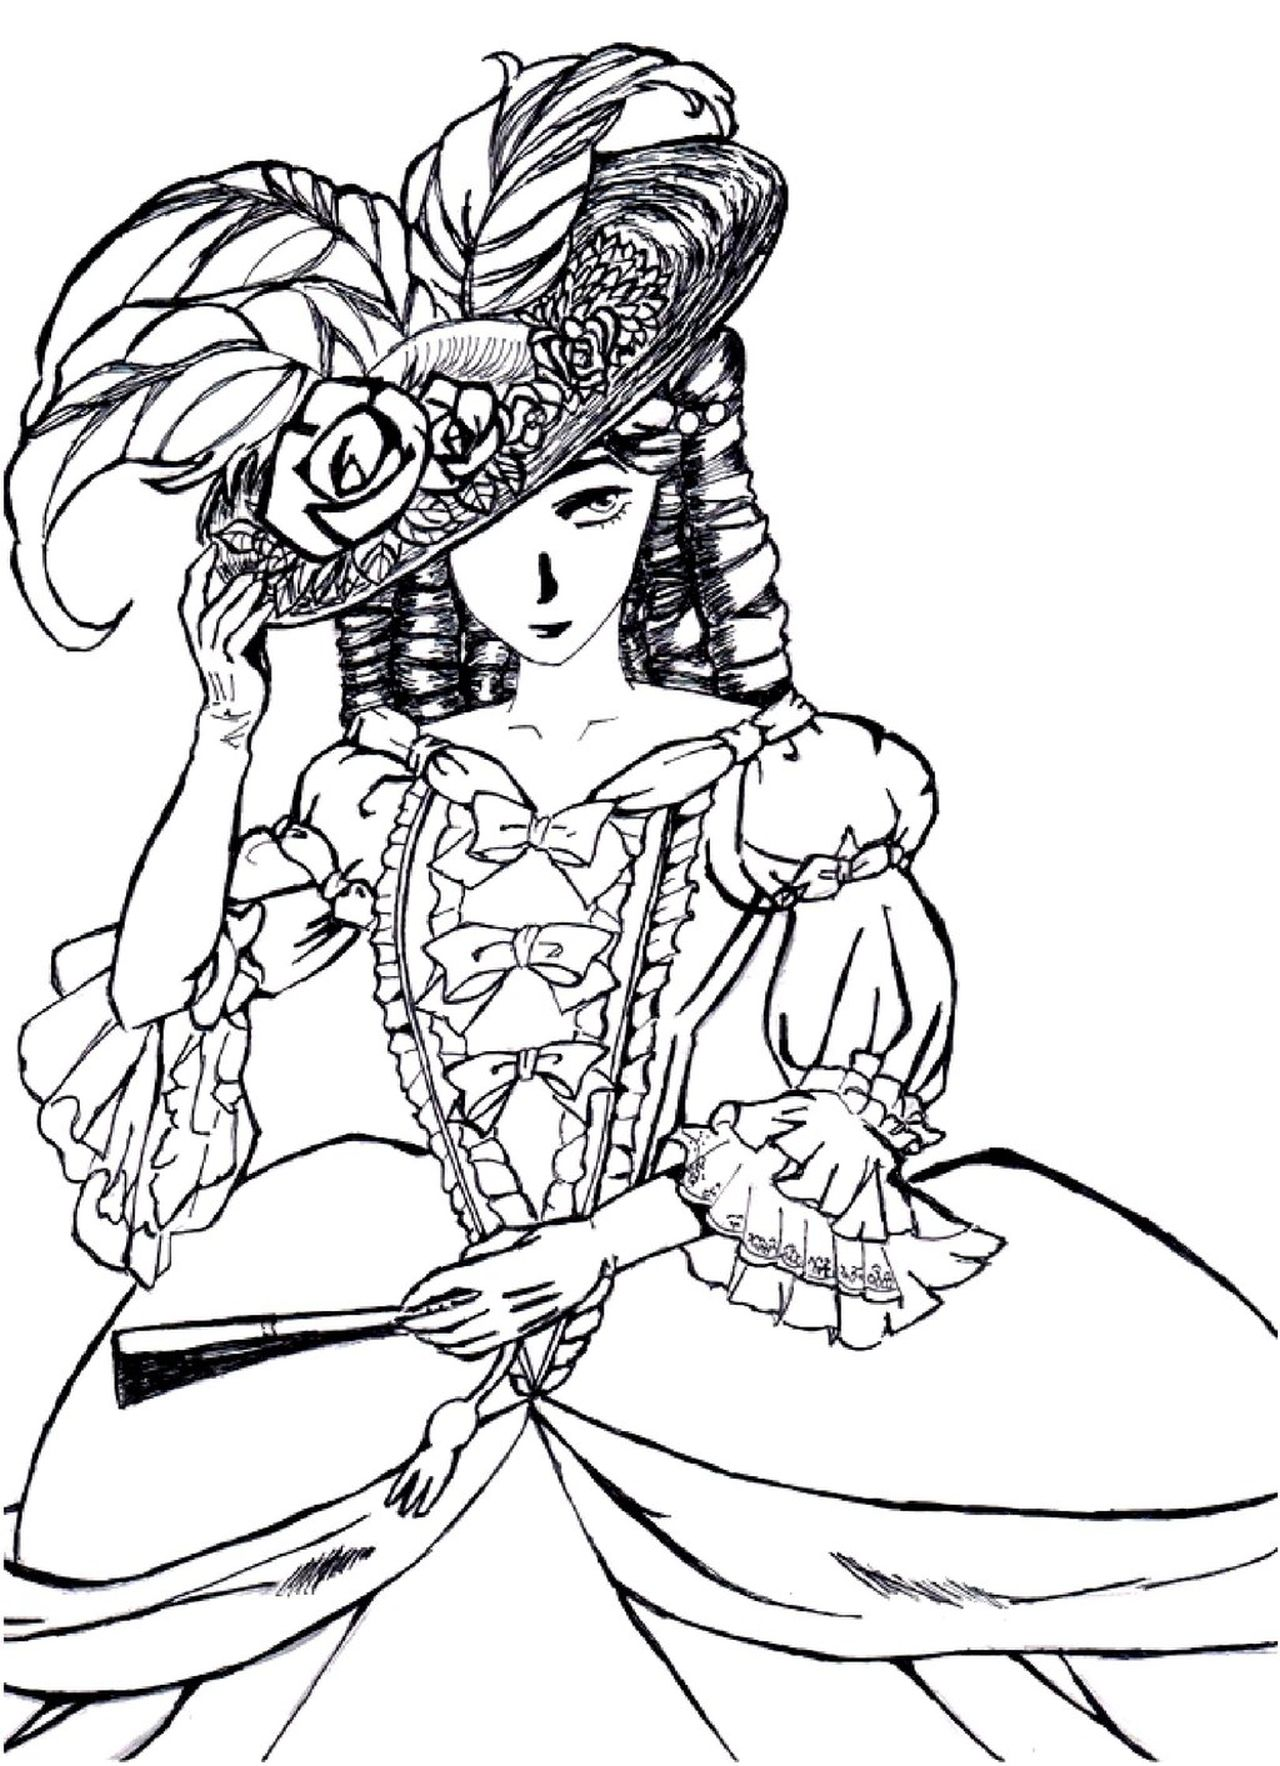 victorian woman fashion dress hard coloring pages for grown ups - Coloring Pages For Women